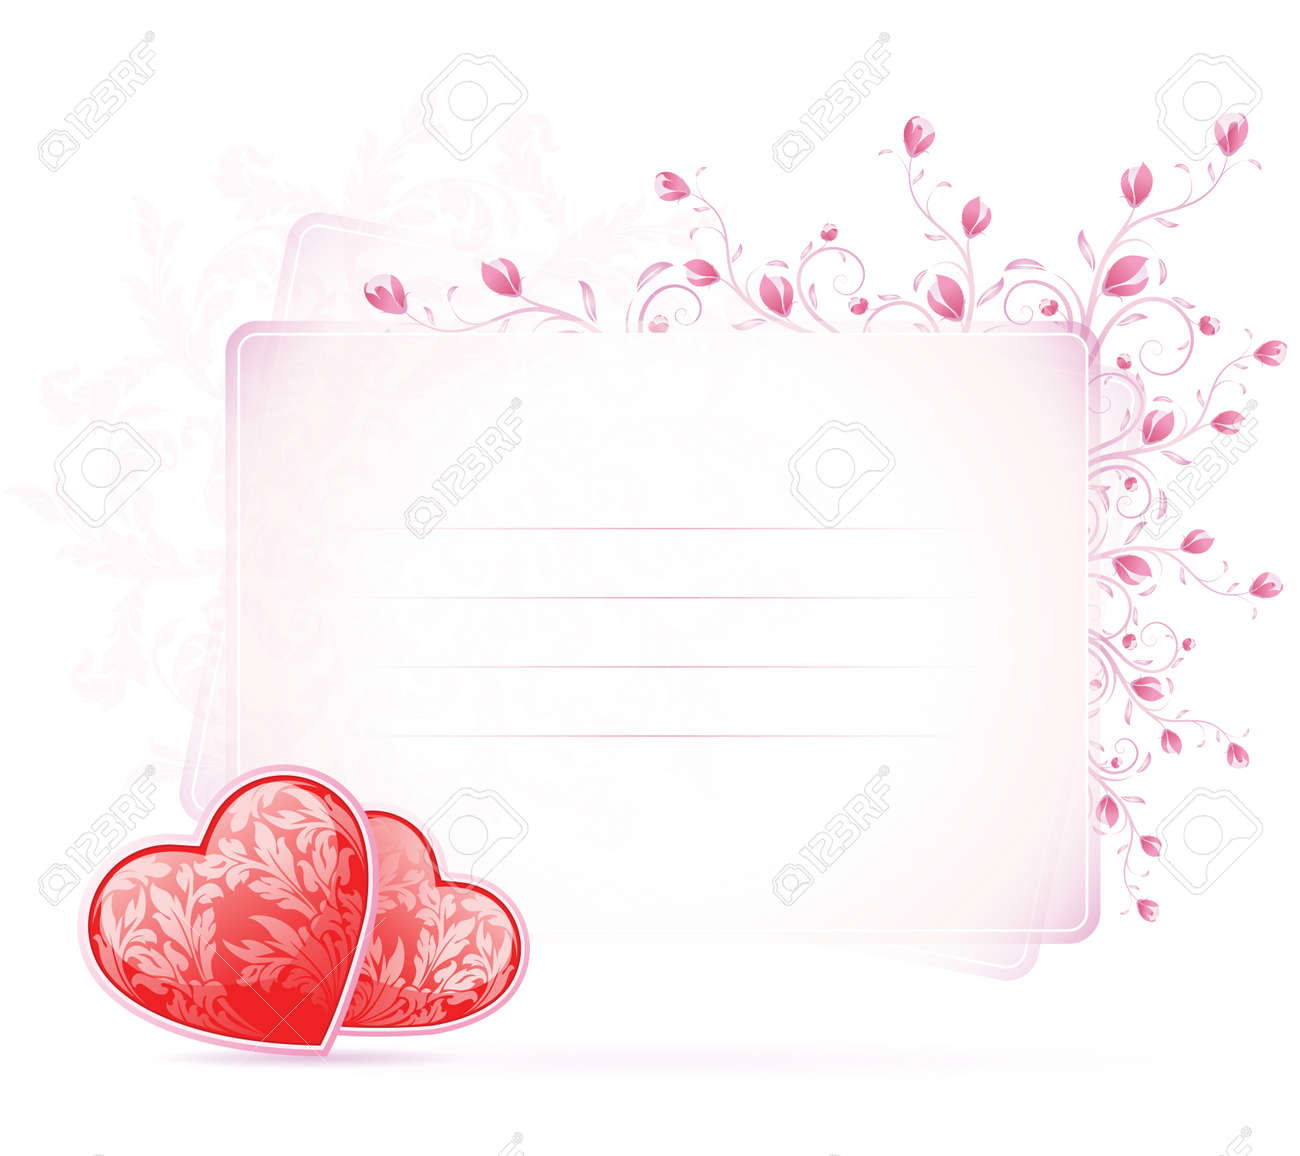 339,198 Valentine Background Stock Illustrations, Cliparts And ...